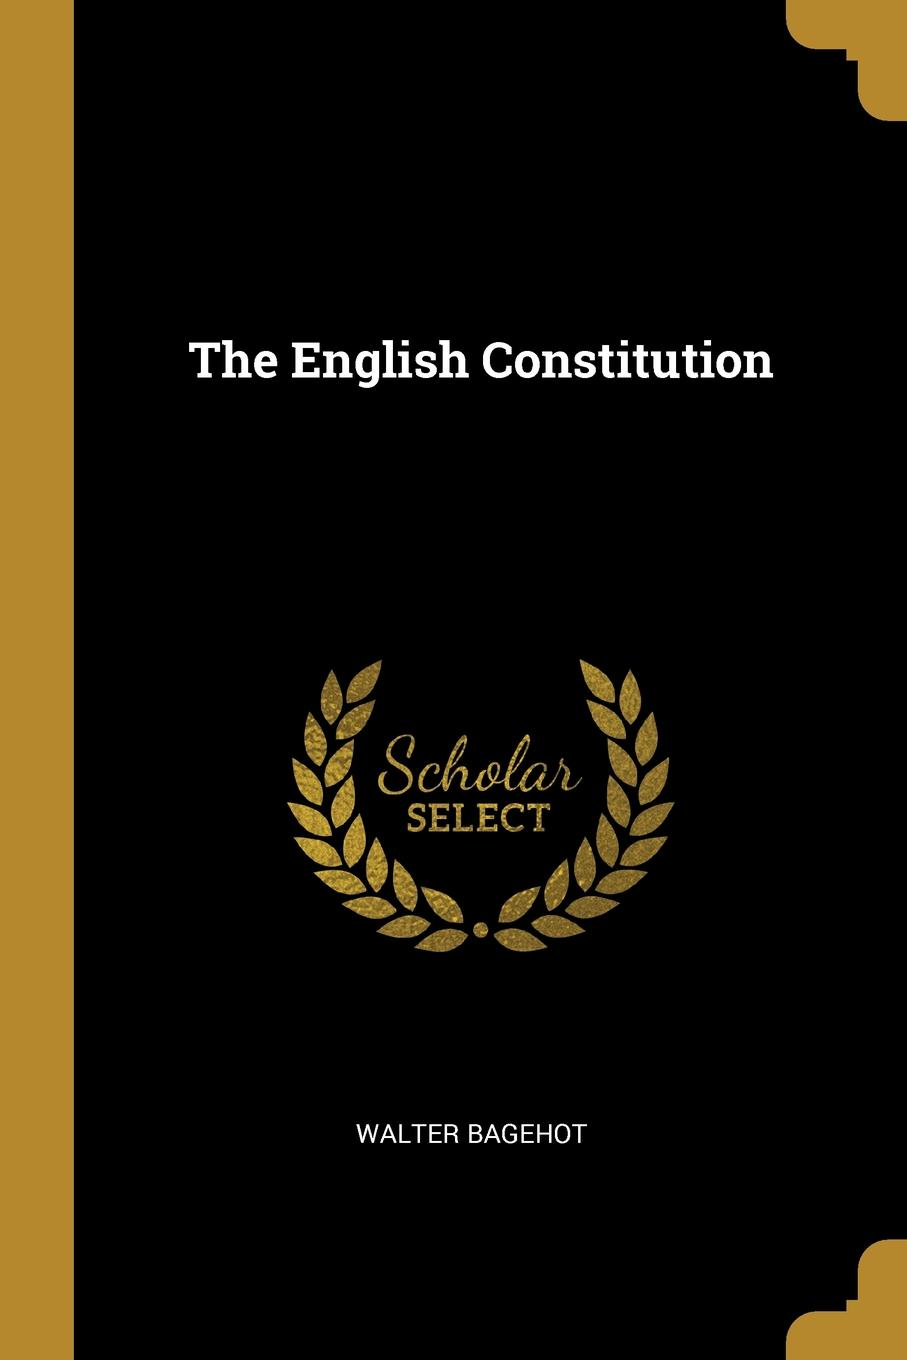 Walter Bagehot. The English Constitution